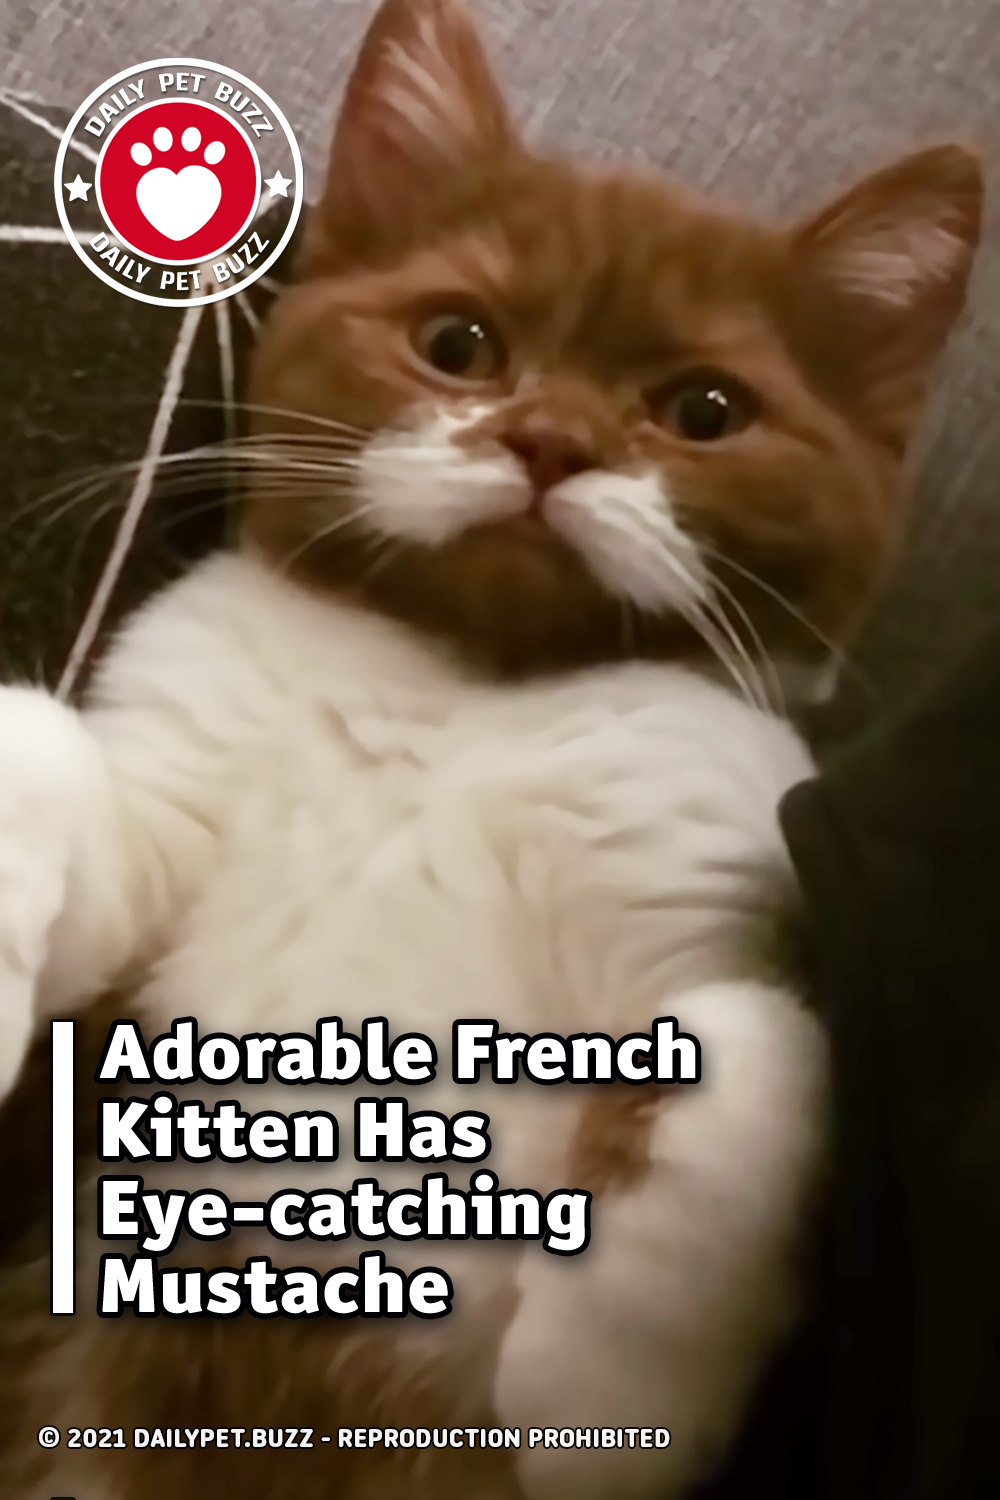 Adorable French Kitten Has Eye-catching Mustache